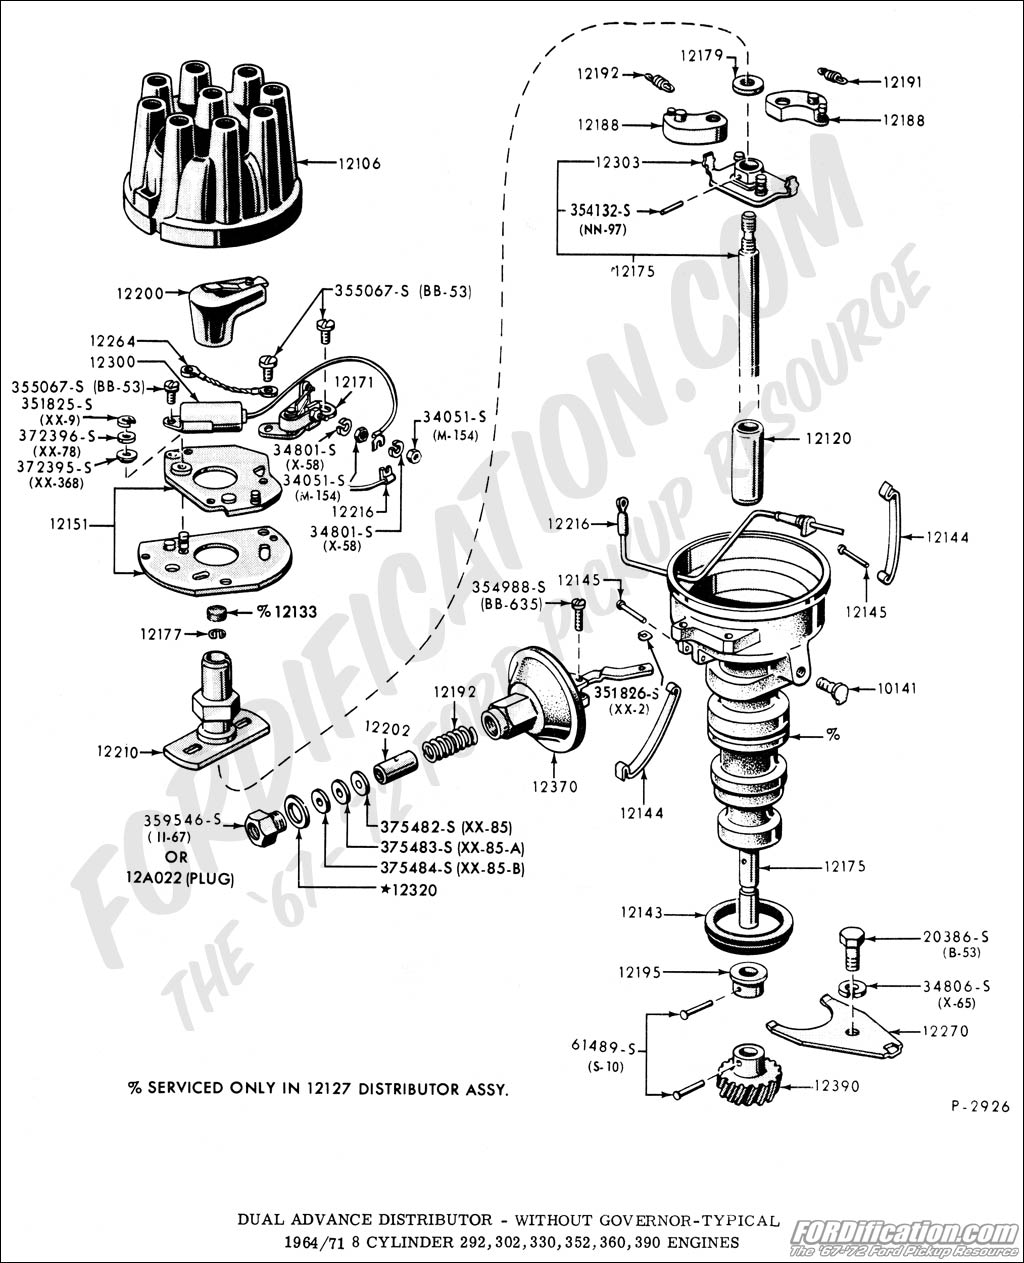 distributor_V8 03 ford truck technical drawings and schematics section i ford 302 wiring diagram at n-0.co